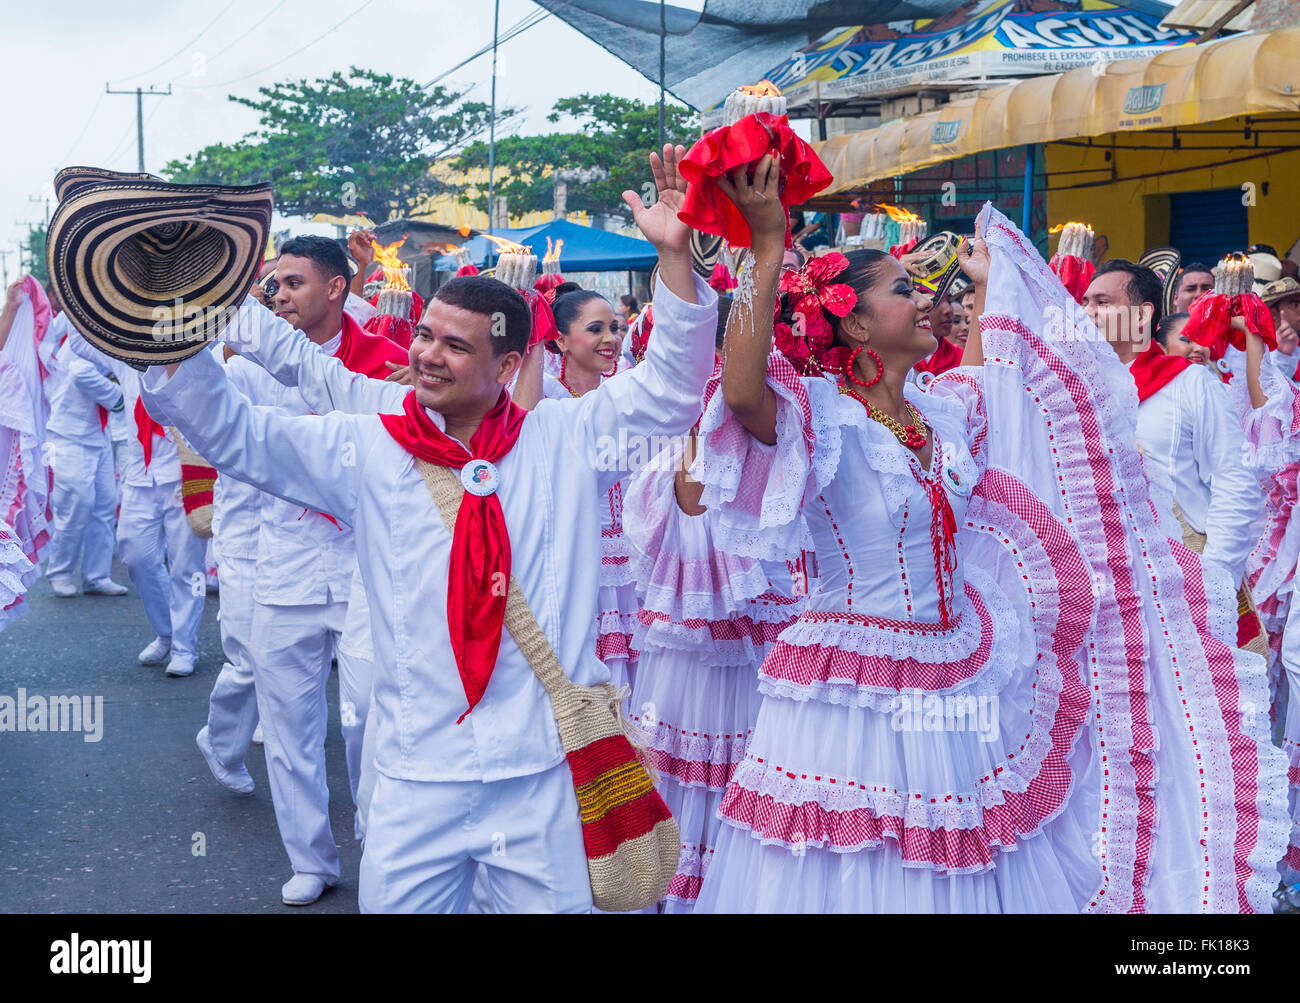 Participants in the Barranquilla Carnival in Barranquilla , Colombia - Stock Image